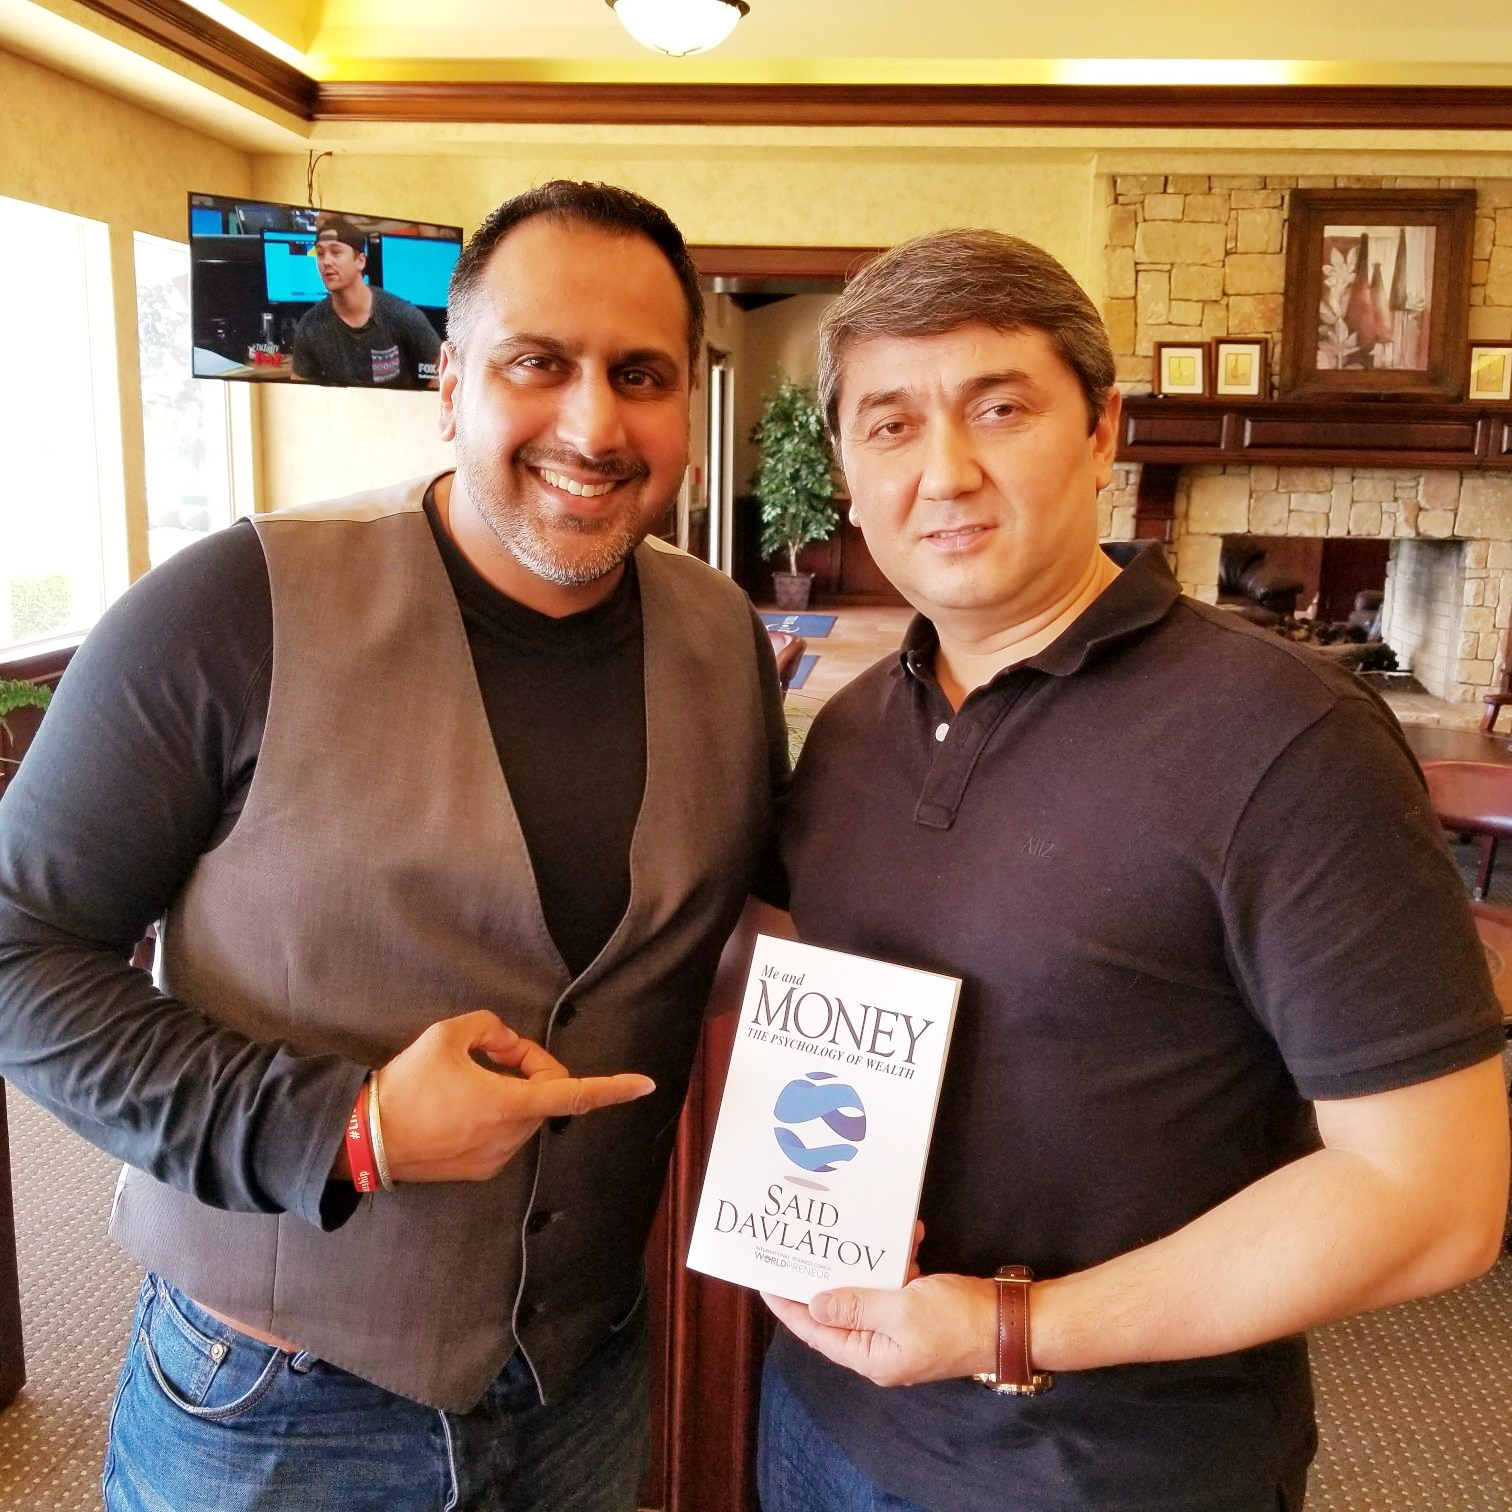 -International-Business-Speaker-and-Trainer-Harry-Singha-with-Said-Davlatov-at-The-Conversation.jpg